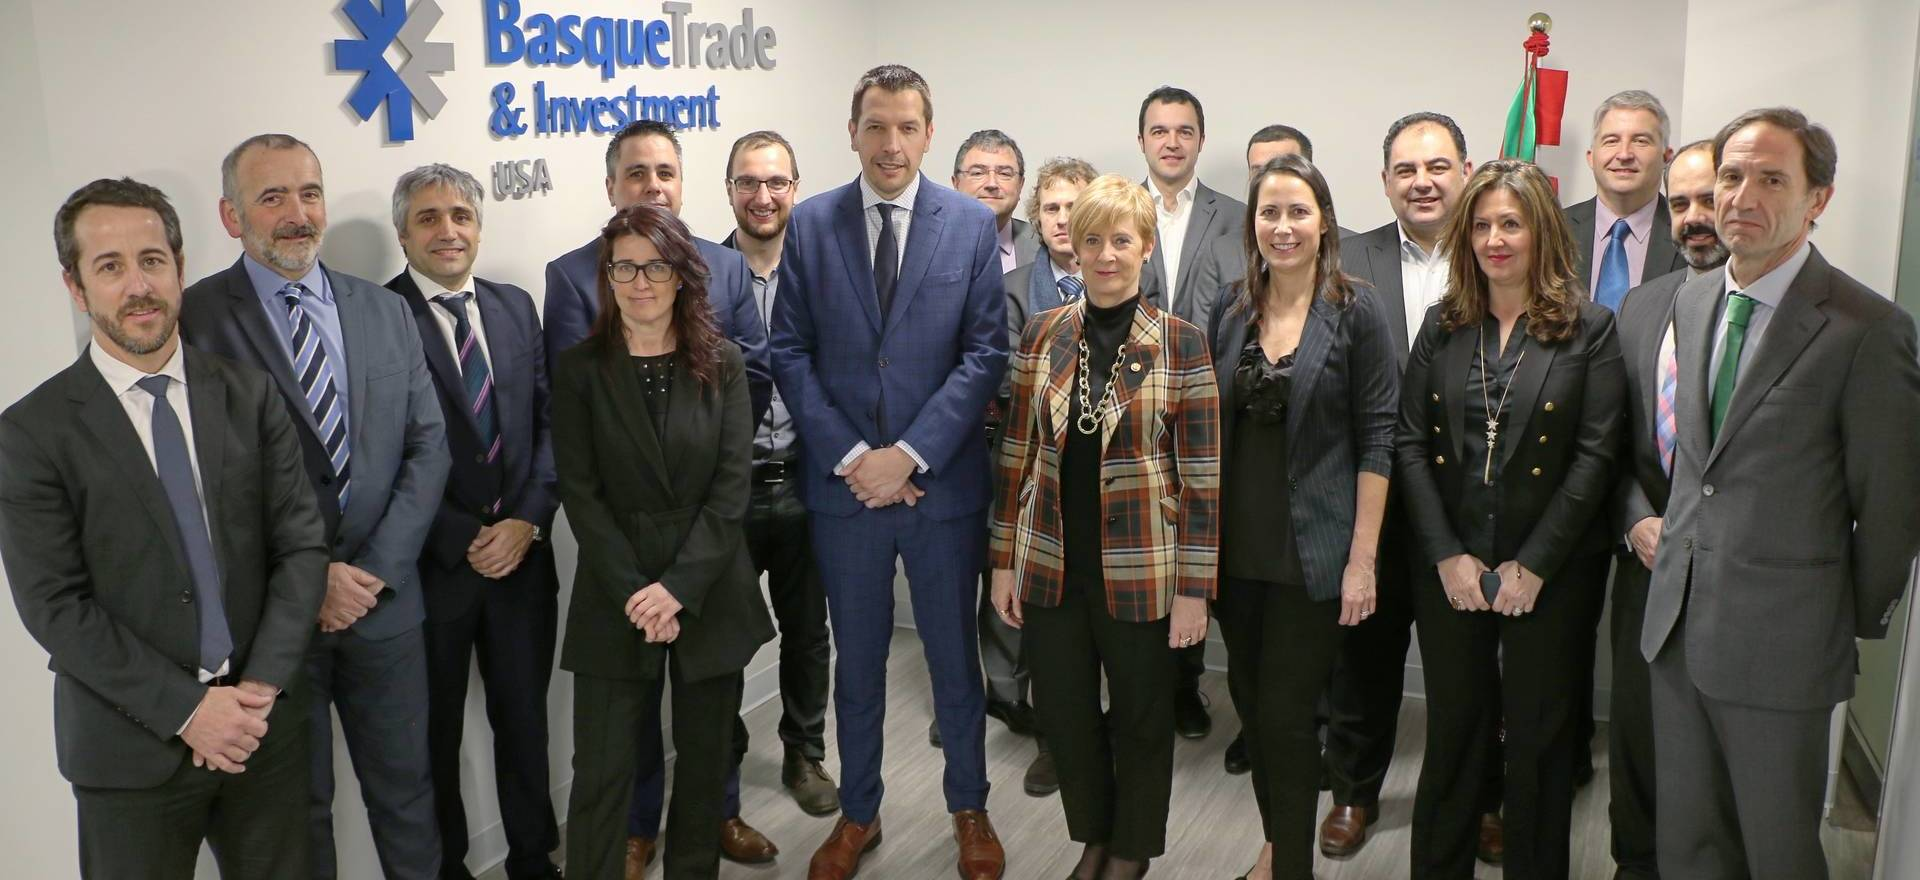 Euskabea in commercial mission to United States with the basque companies delegation of the energy sector